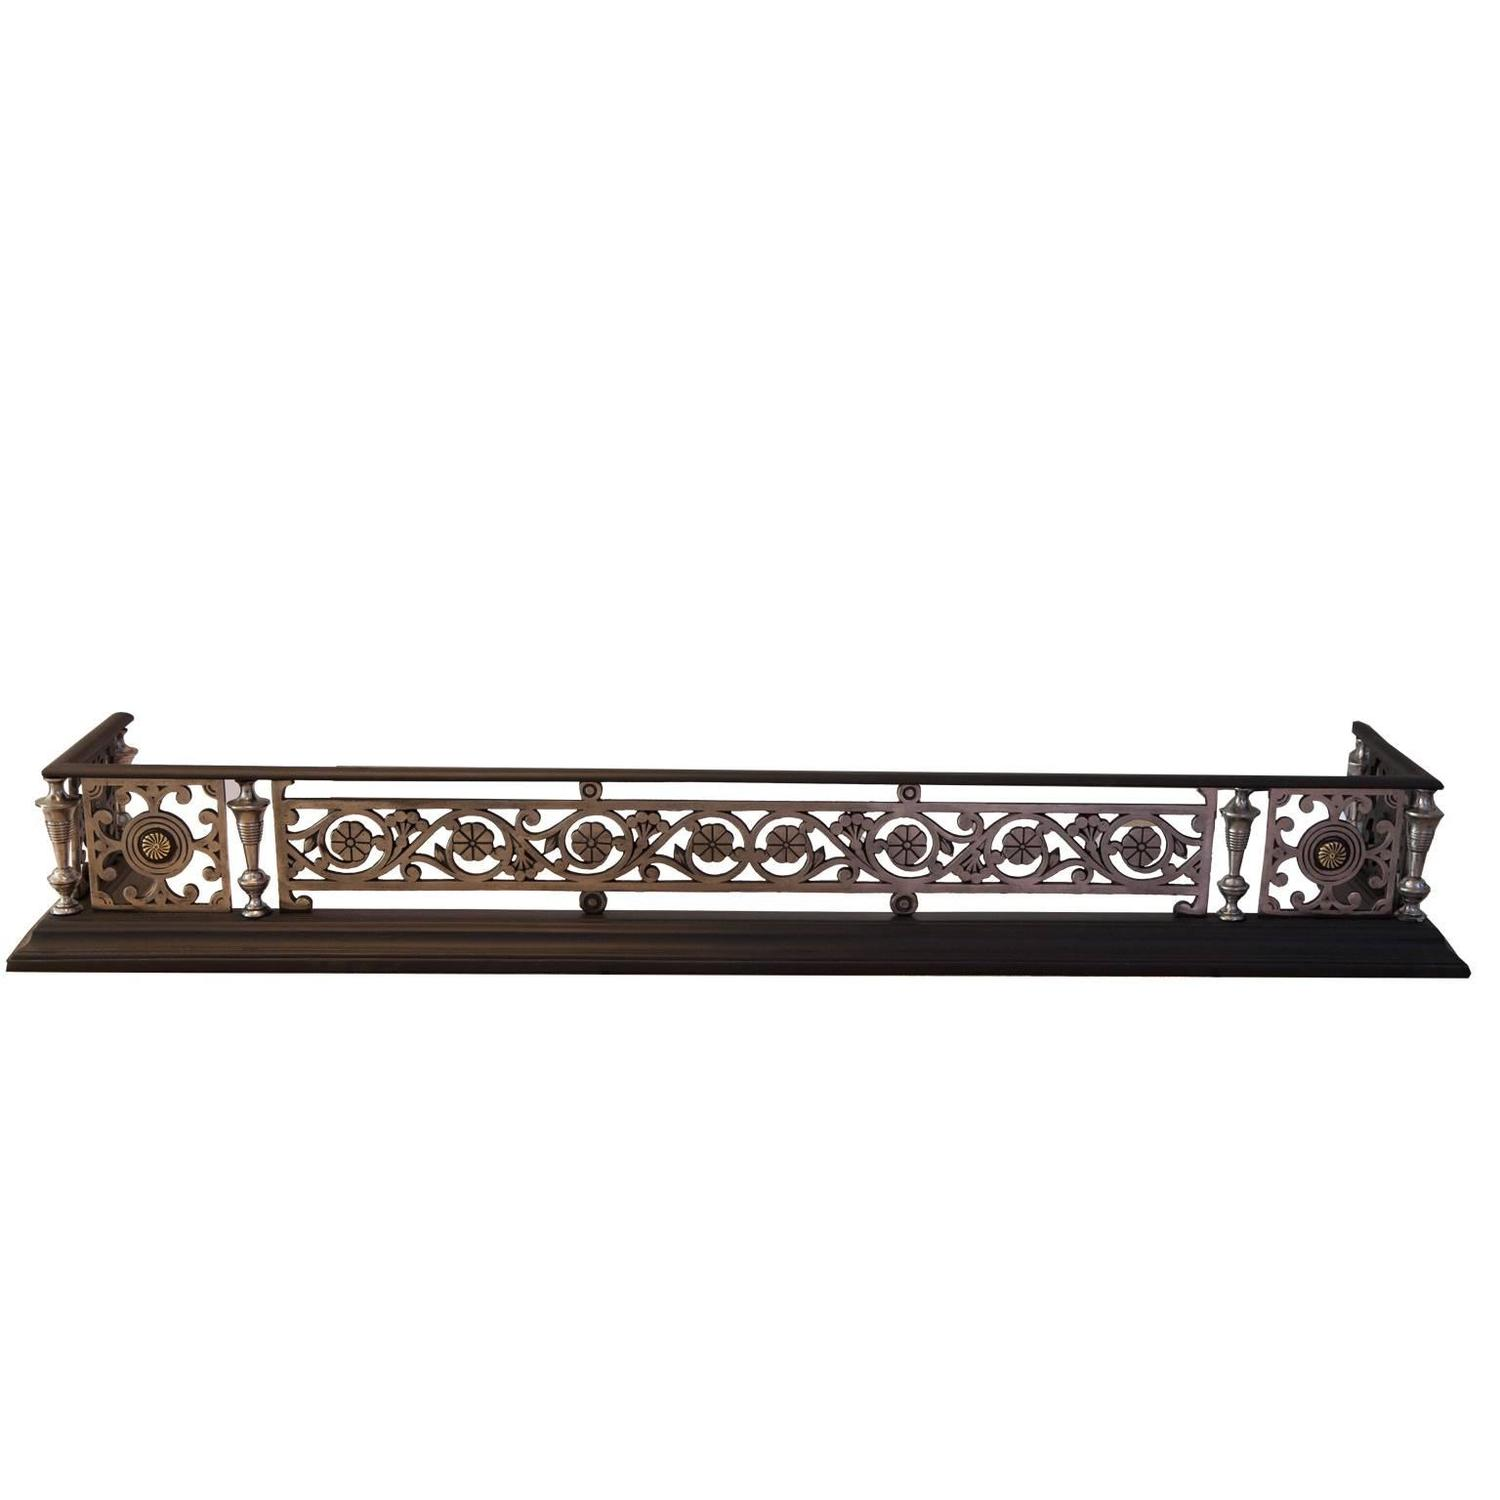 19th century cast iron fireplace fender for sale at 1stdibs